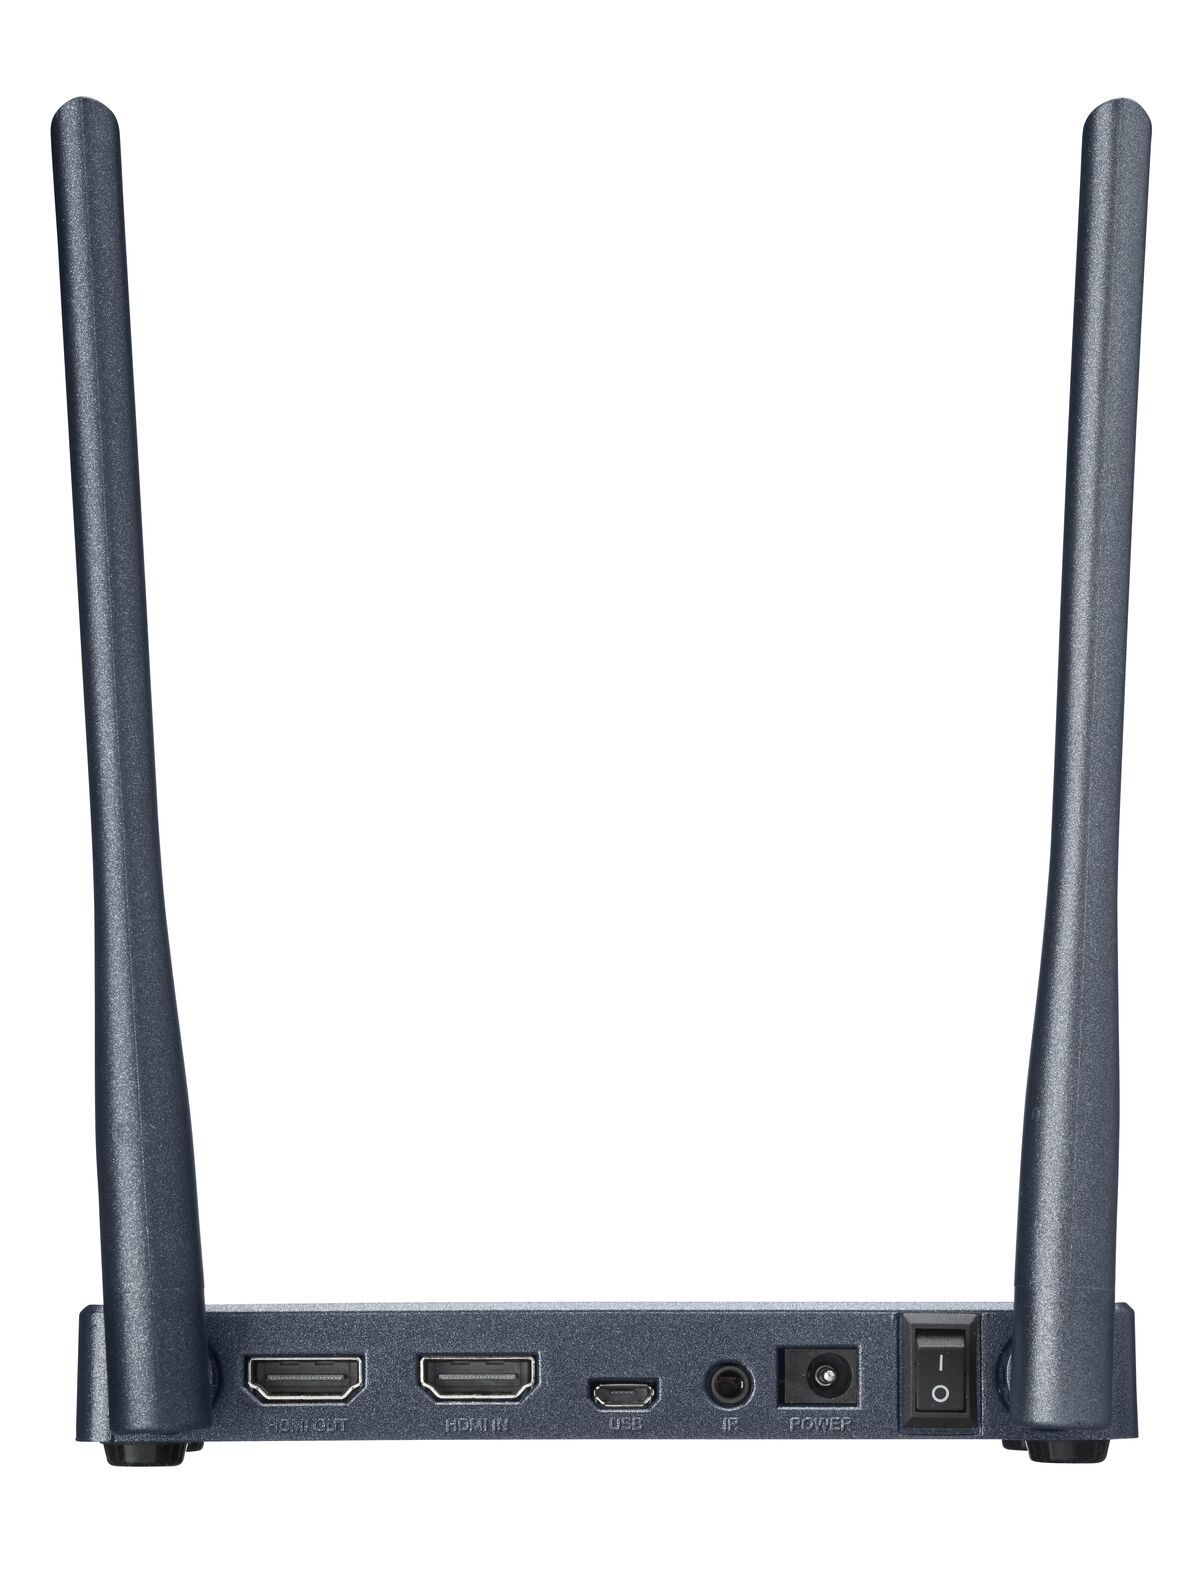 Vogel's SAVA 1022 Smart AV wireless HDMI transmitter/receiver - Detail